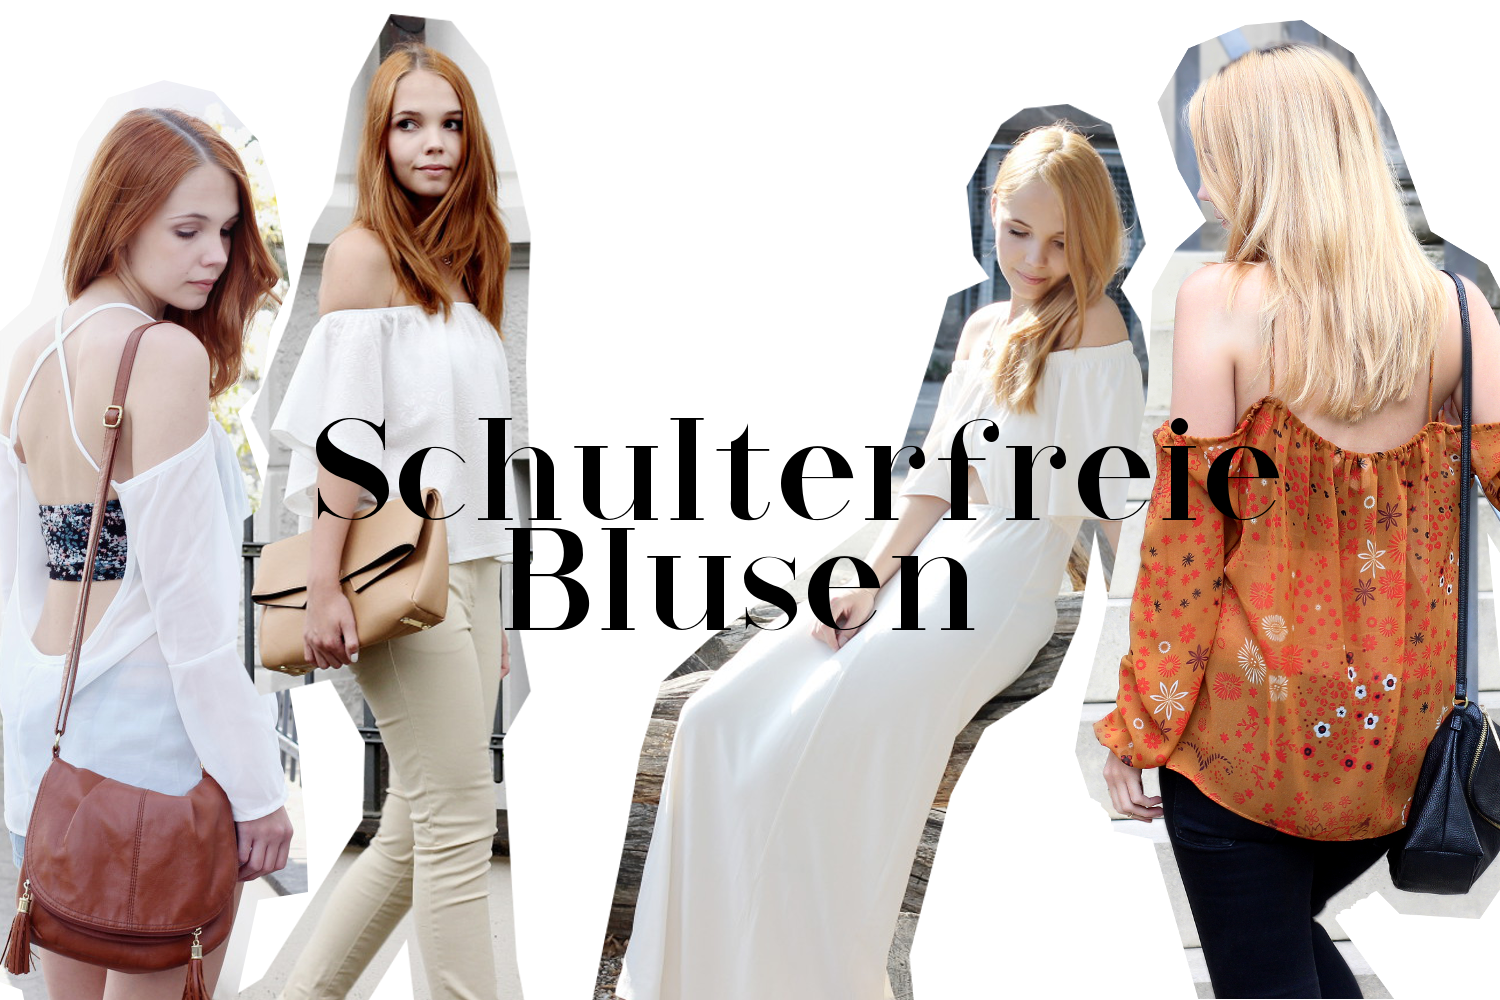 bezaubernde nana, bezauberndenana.de, fashionblog, modeblog, germany, deutschland, mode favoriten 2015, trends 2015, fashion, mode, schulterfreie blusen